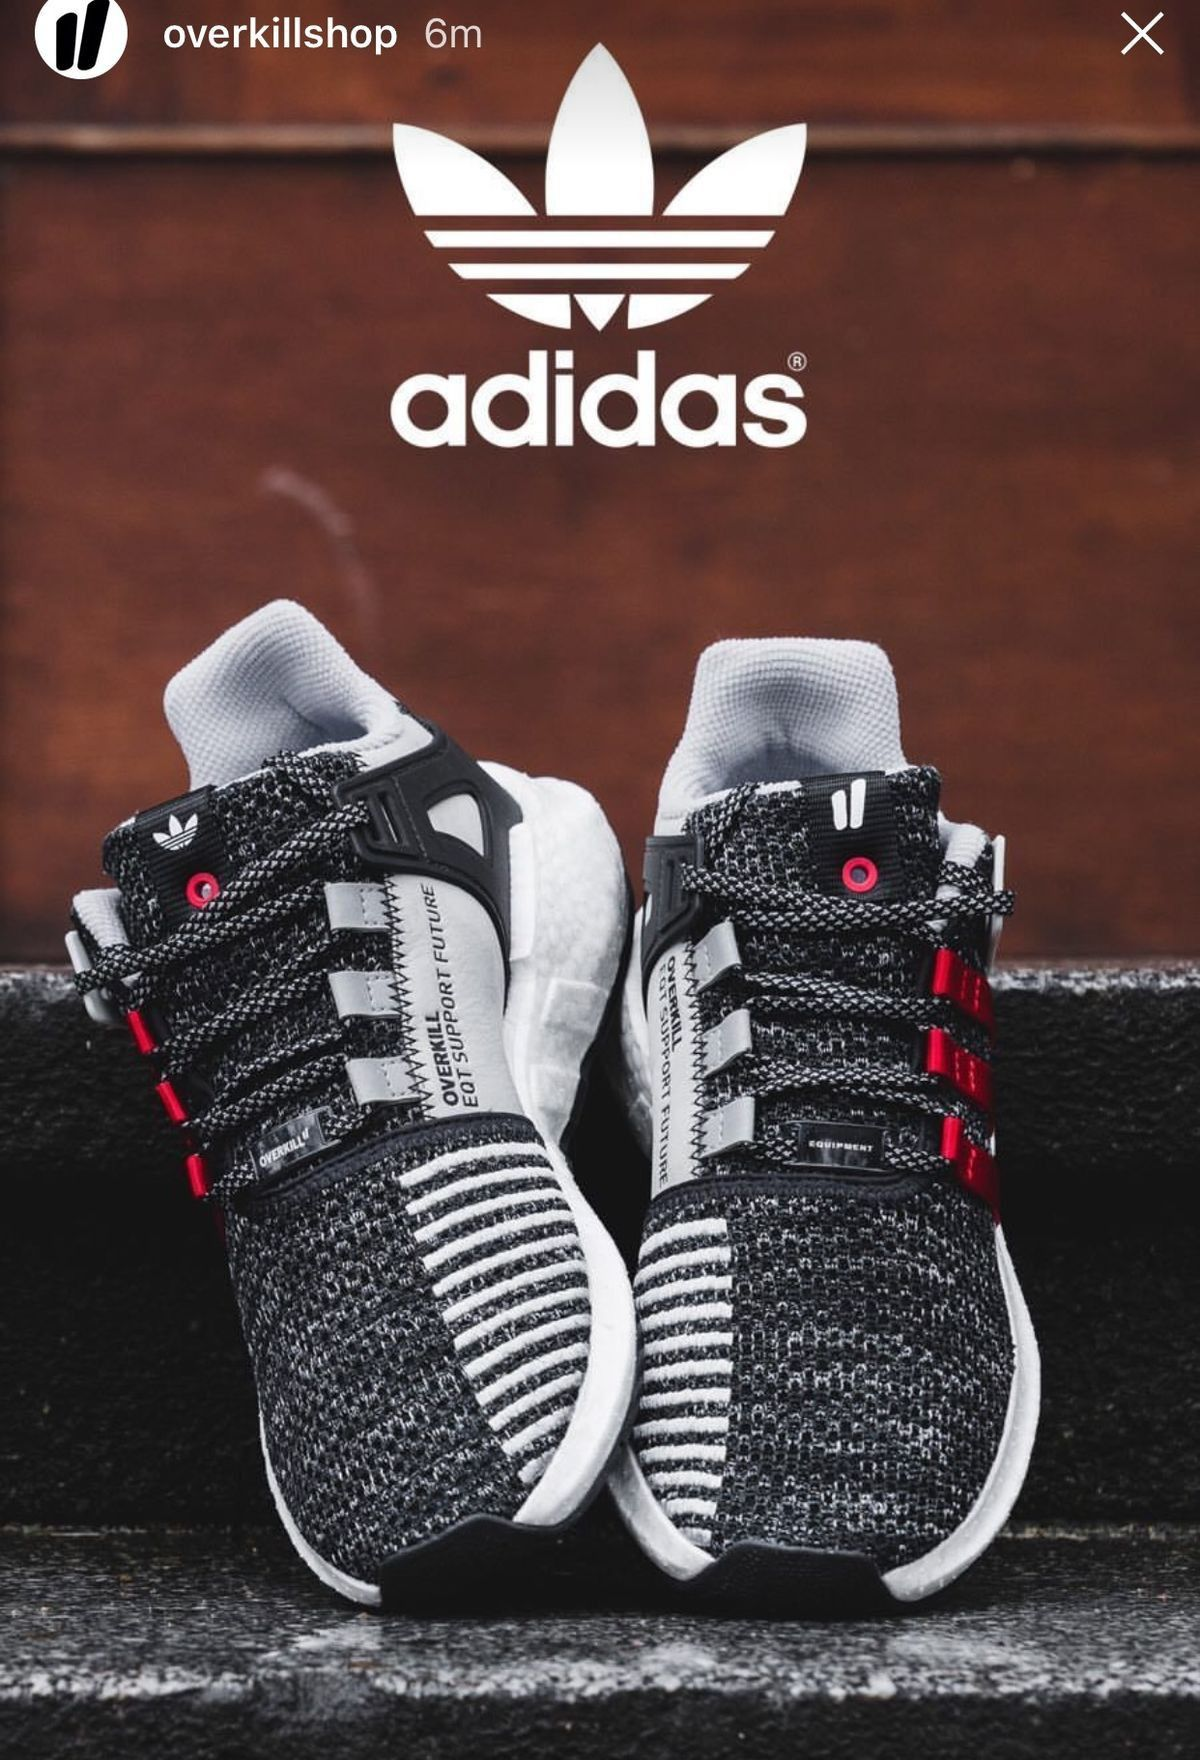 Best Adidas Shoes Addidas Shoes Mens Best Shoes For Men Adidas Shoes Mens